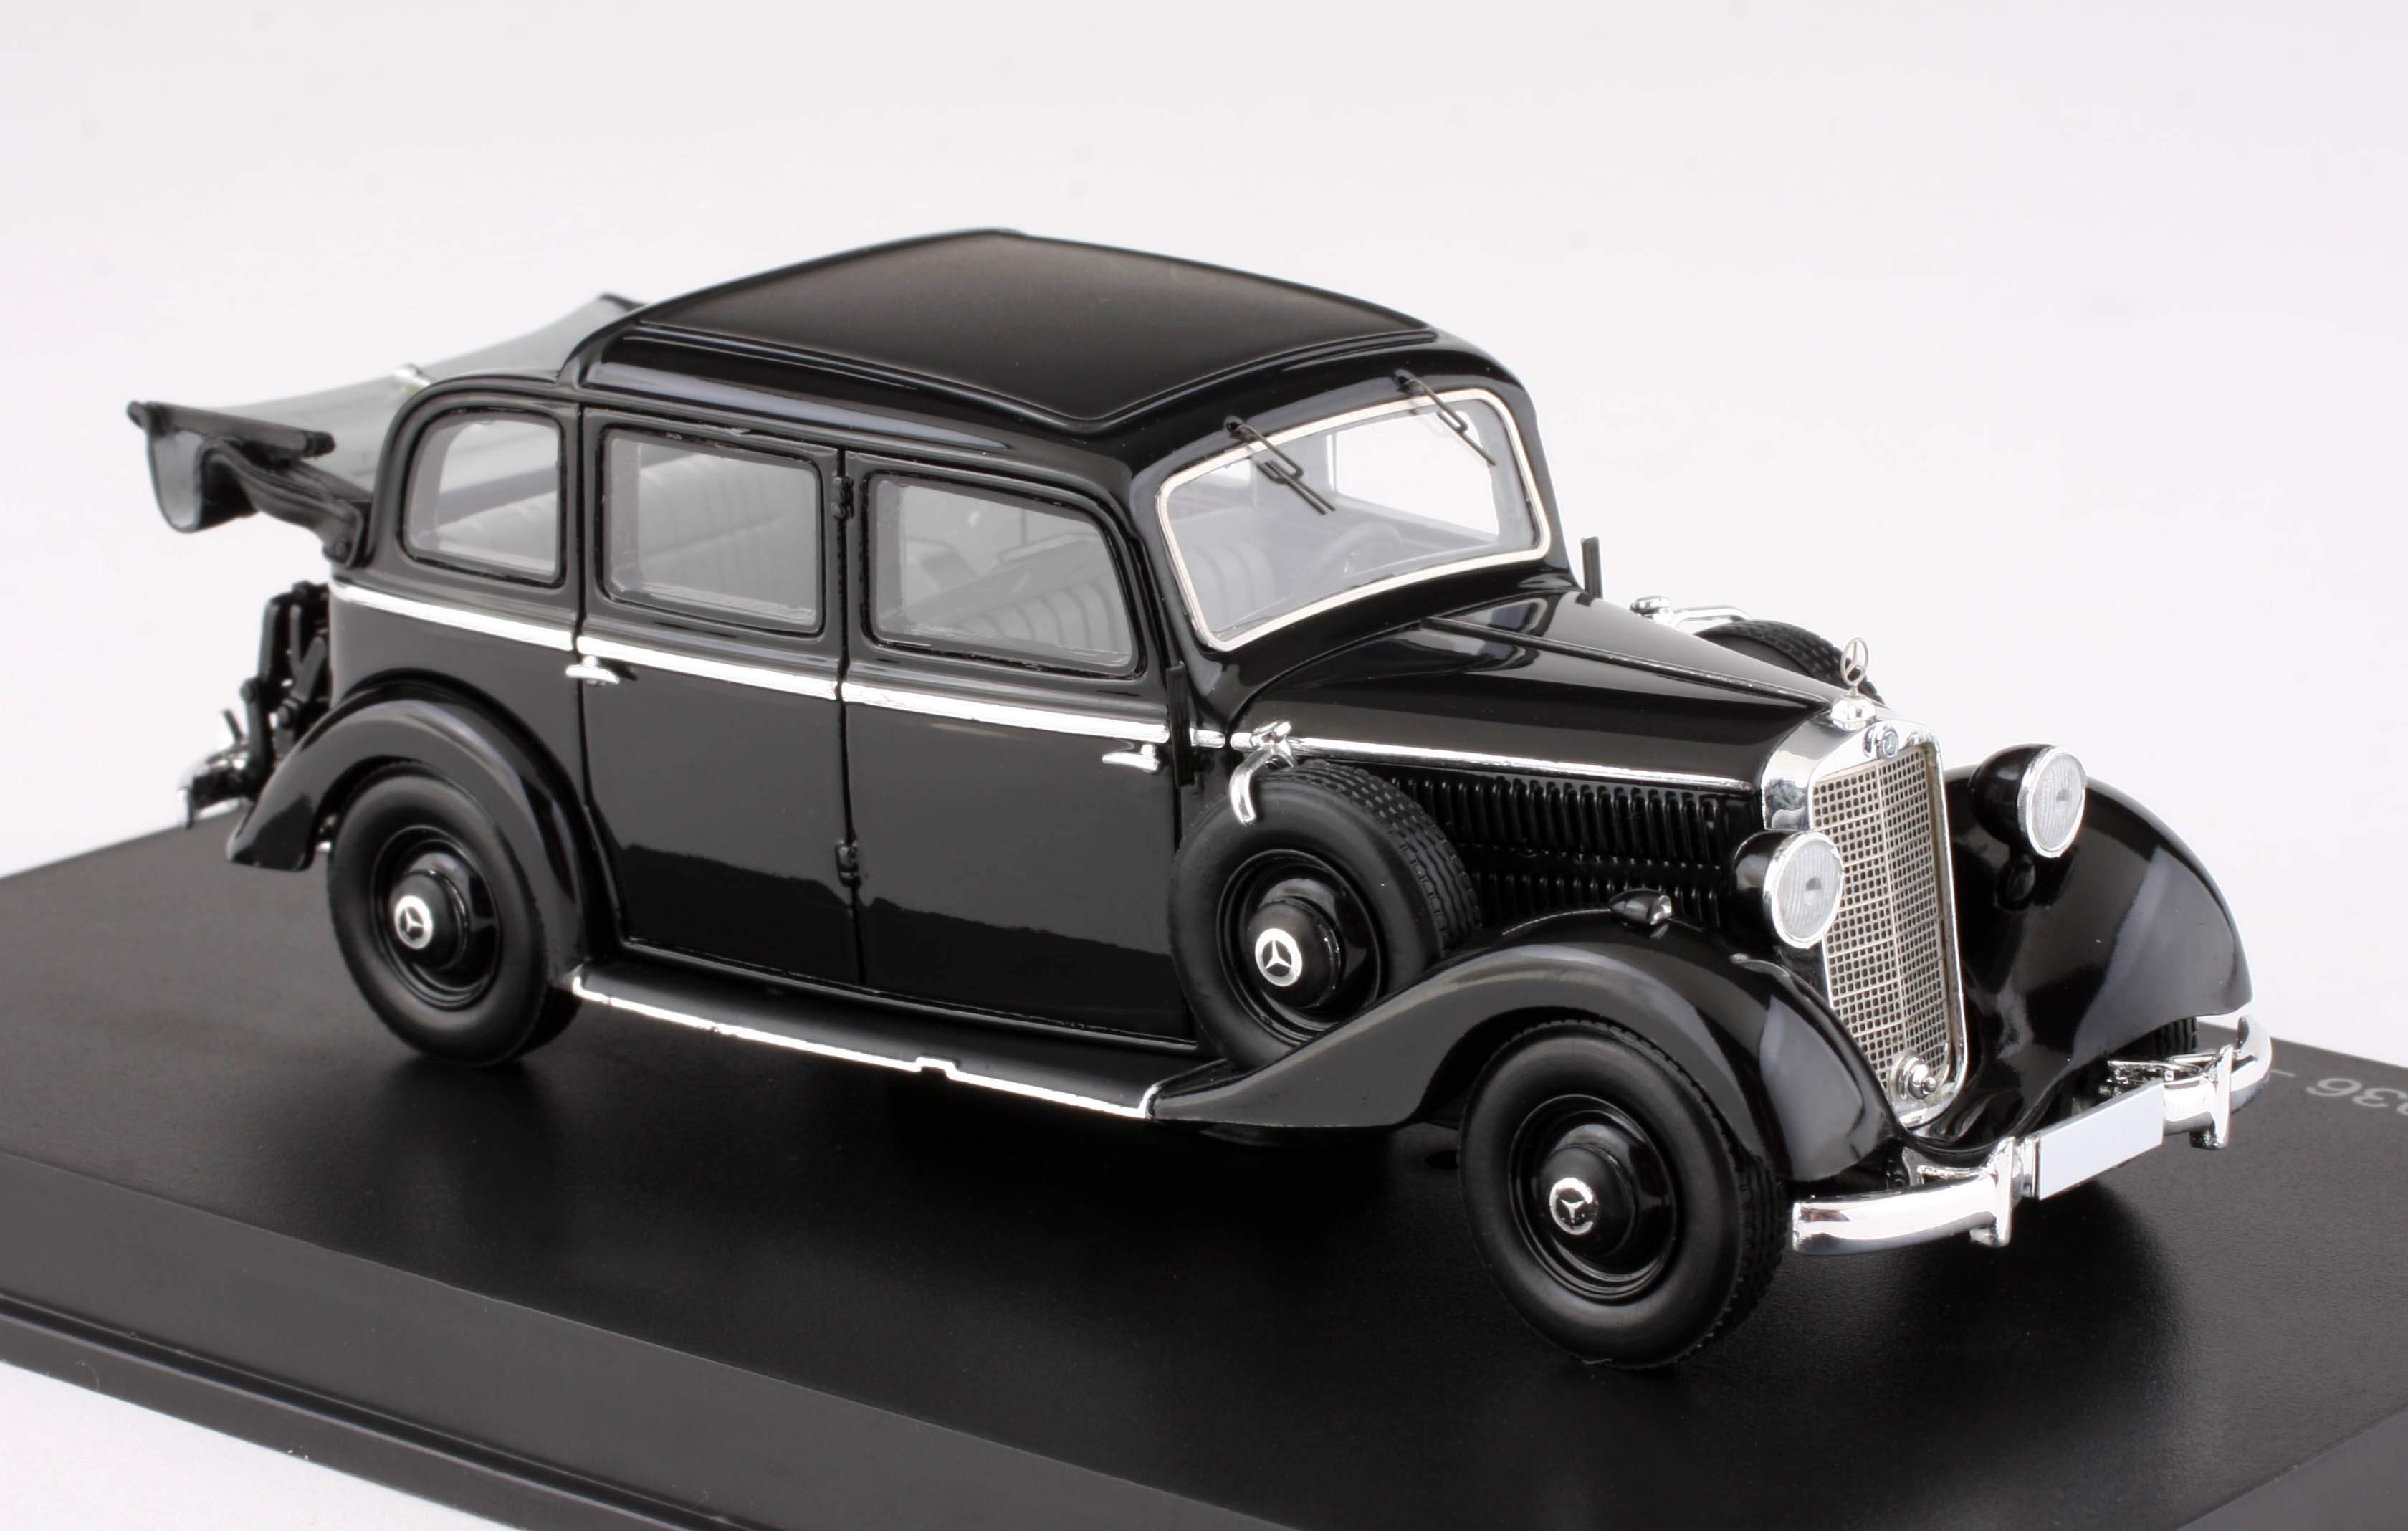 1:43 Esval - 1936-1940 Mercedes-Benz 260D Pullman Landaulet - Diecast Model Car 1/43 scale